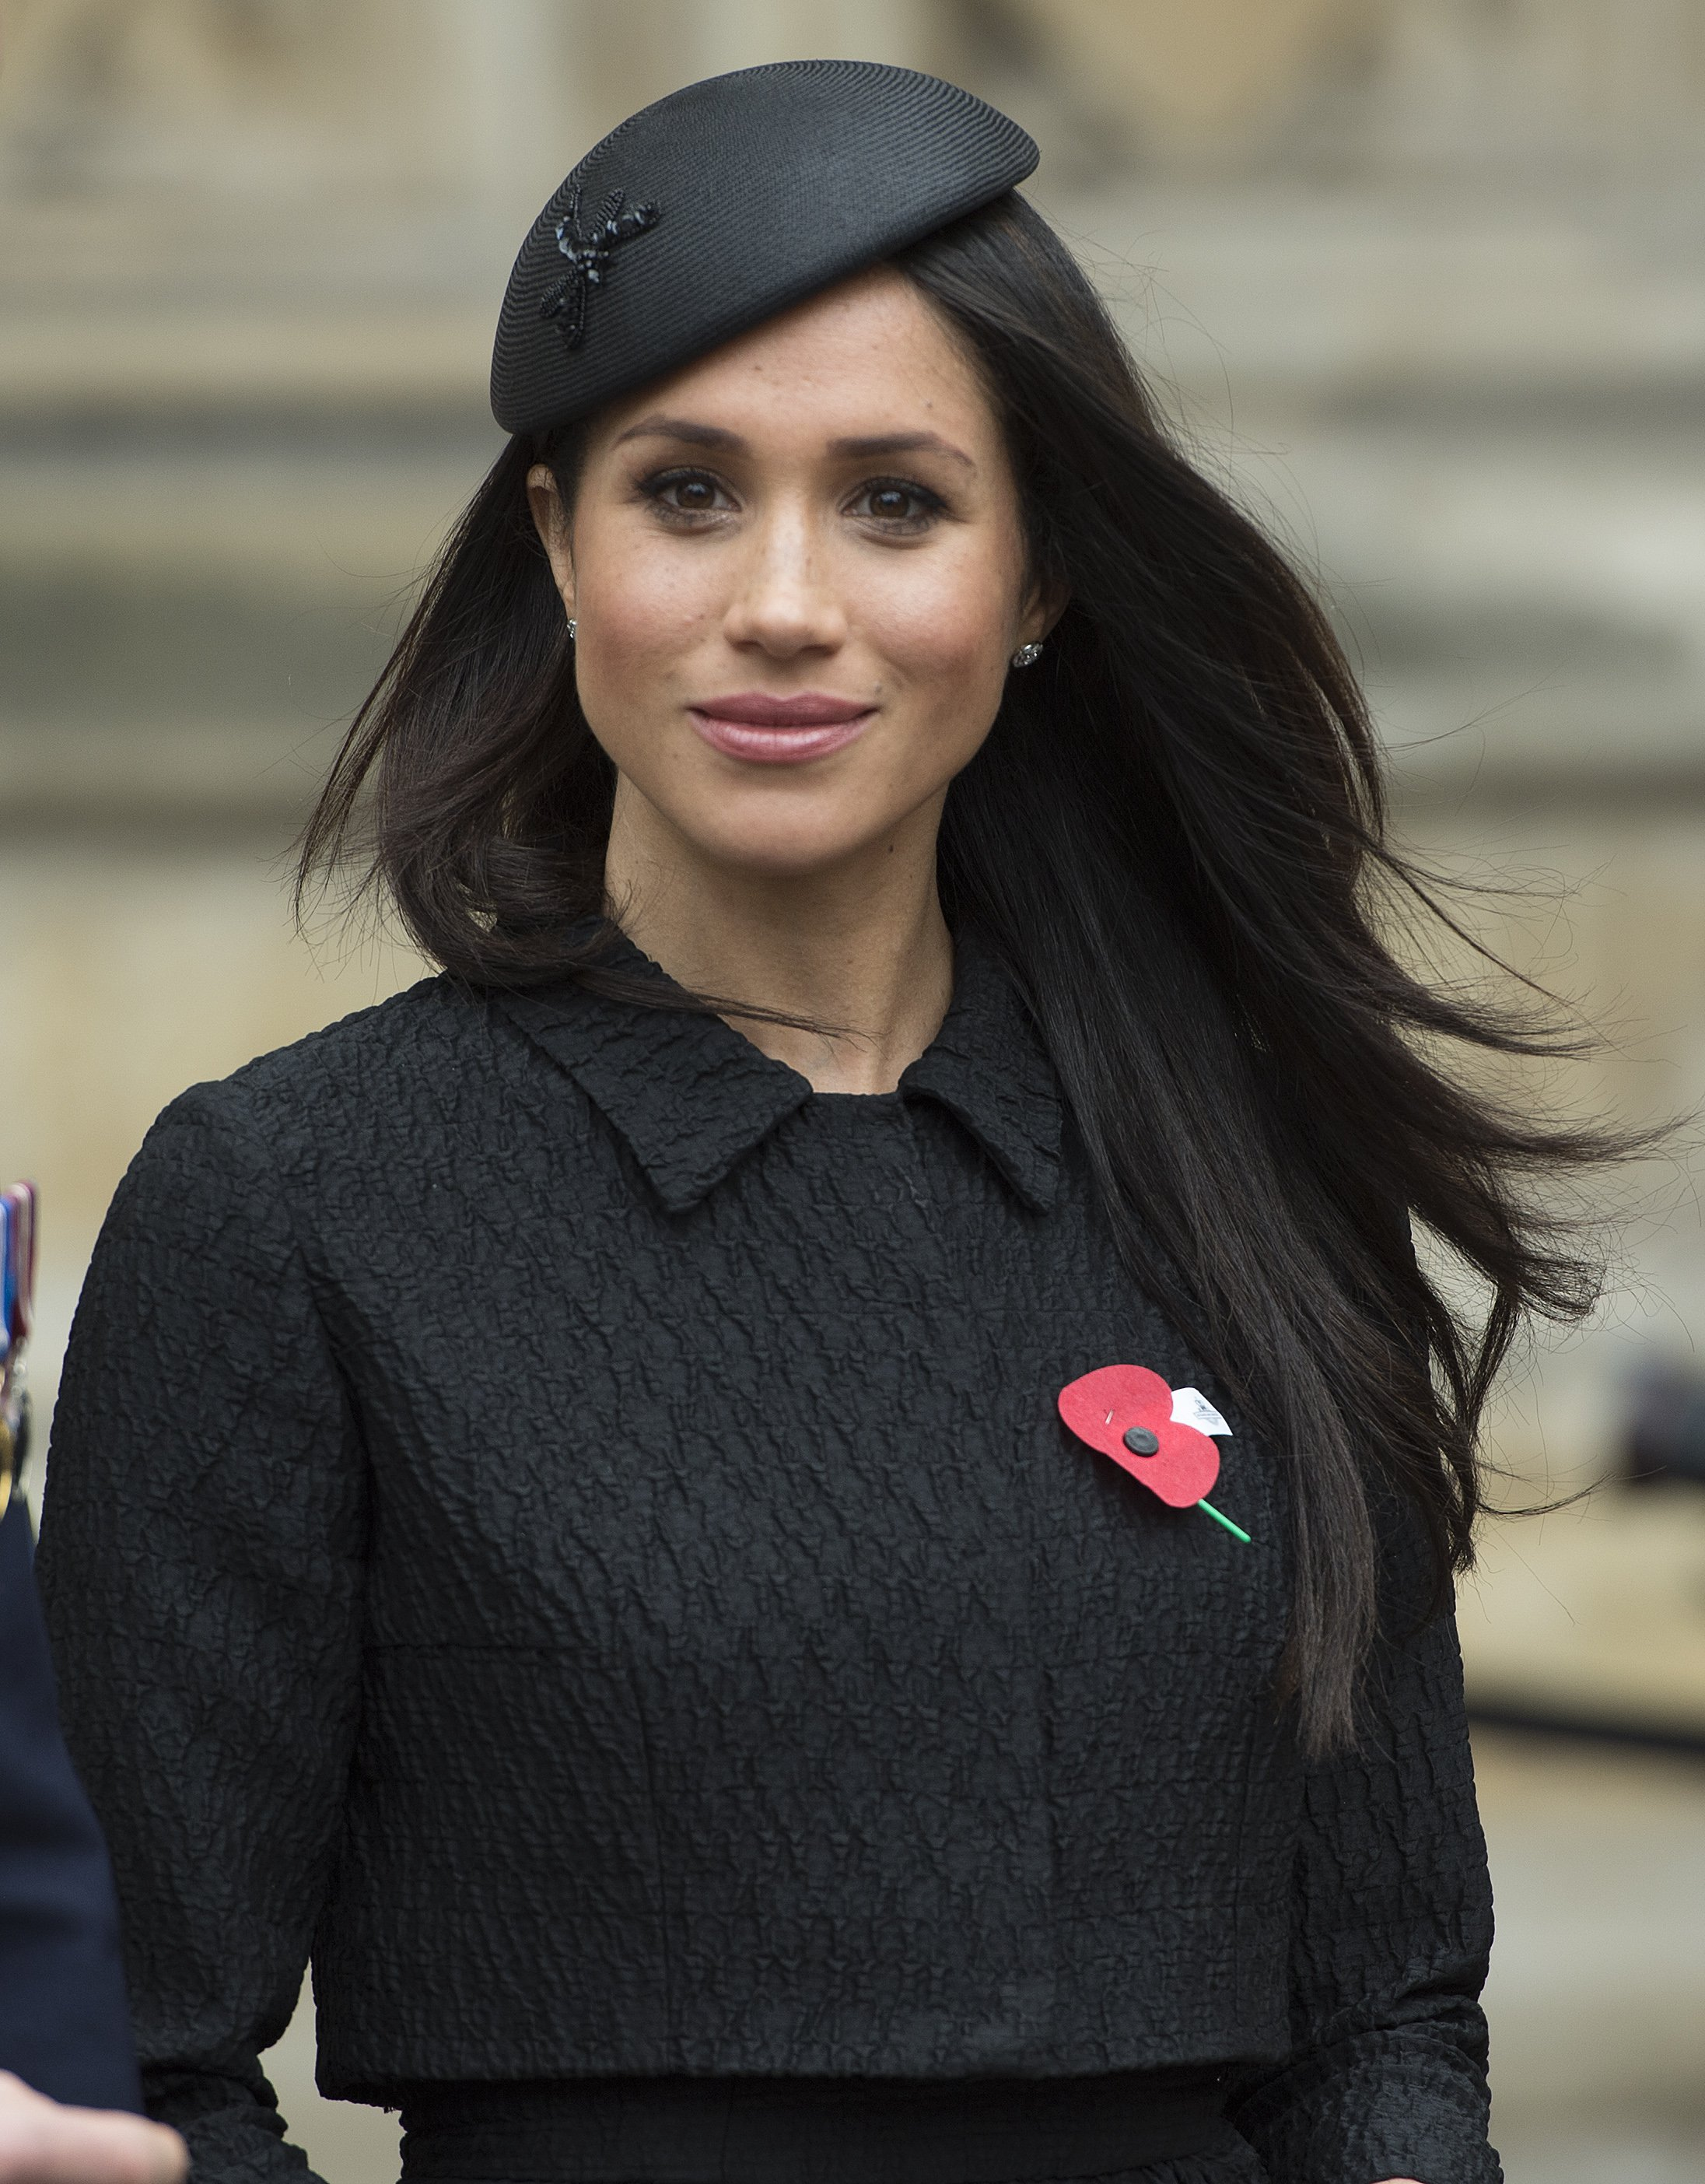 Meghan Markle besucht am 25. April 2018 einen Anzac Day-Gottesdienst in der Westminster Abbey in London, England | Quelle: Getty Images